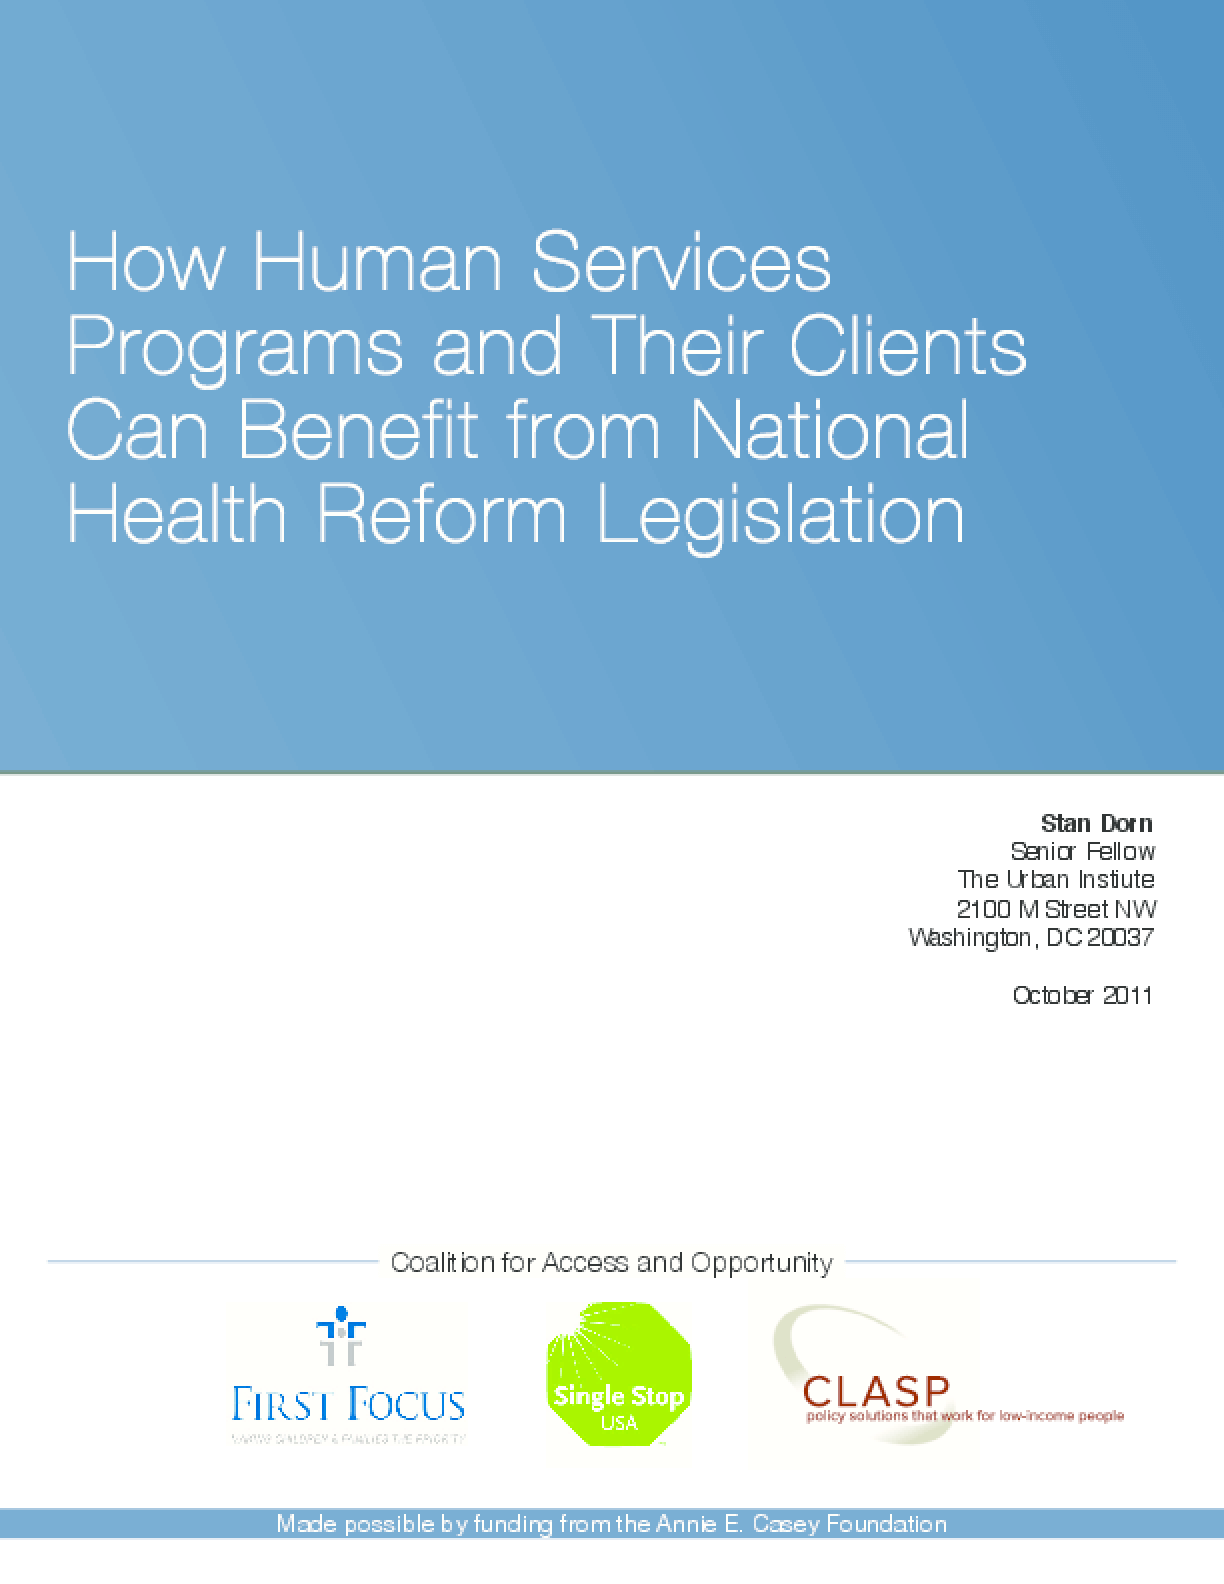 How Human Services Programs and Their Clients Can Benefit From National Health Reform Legislation